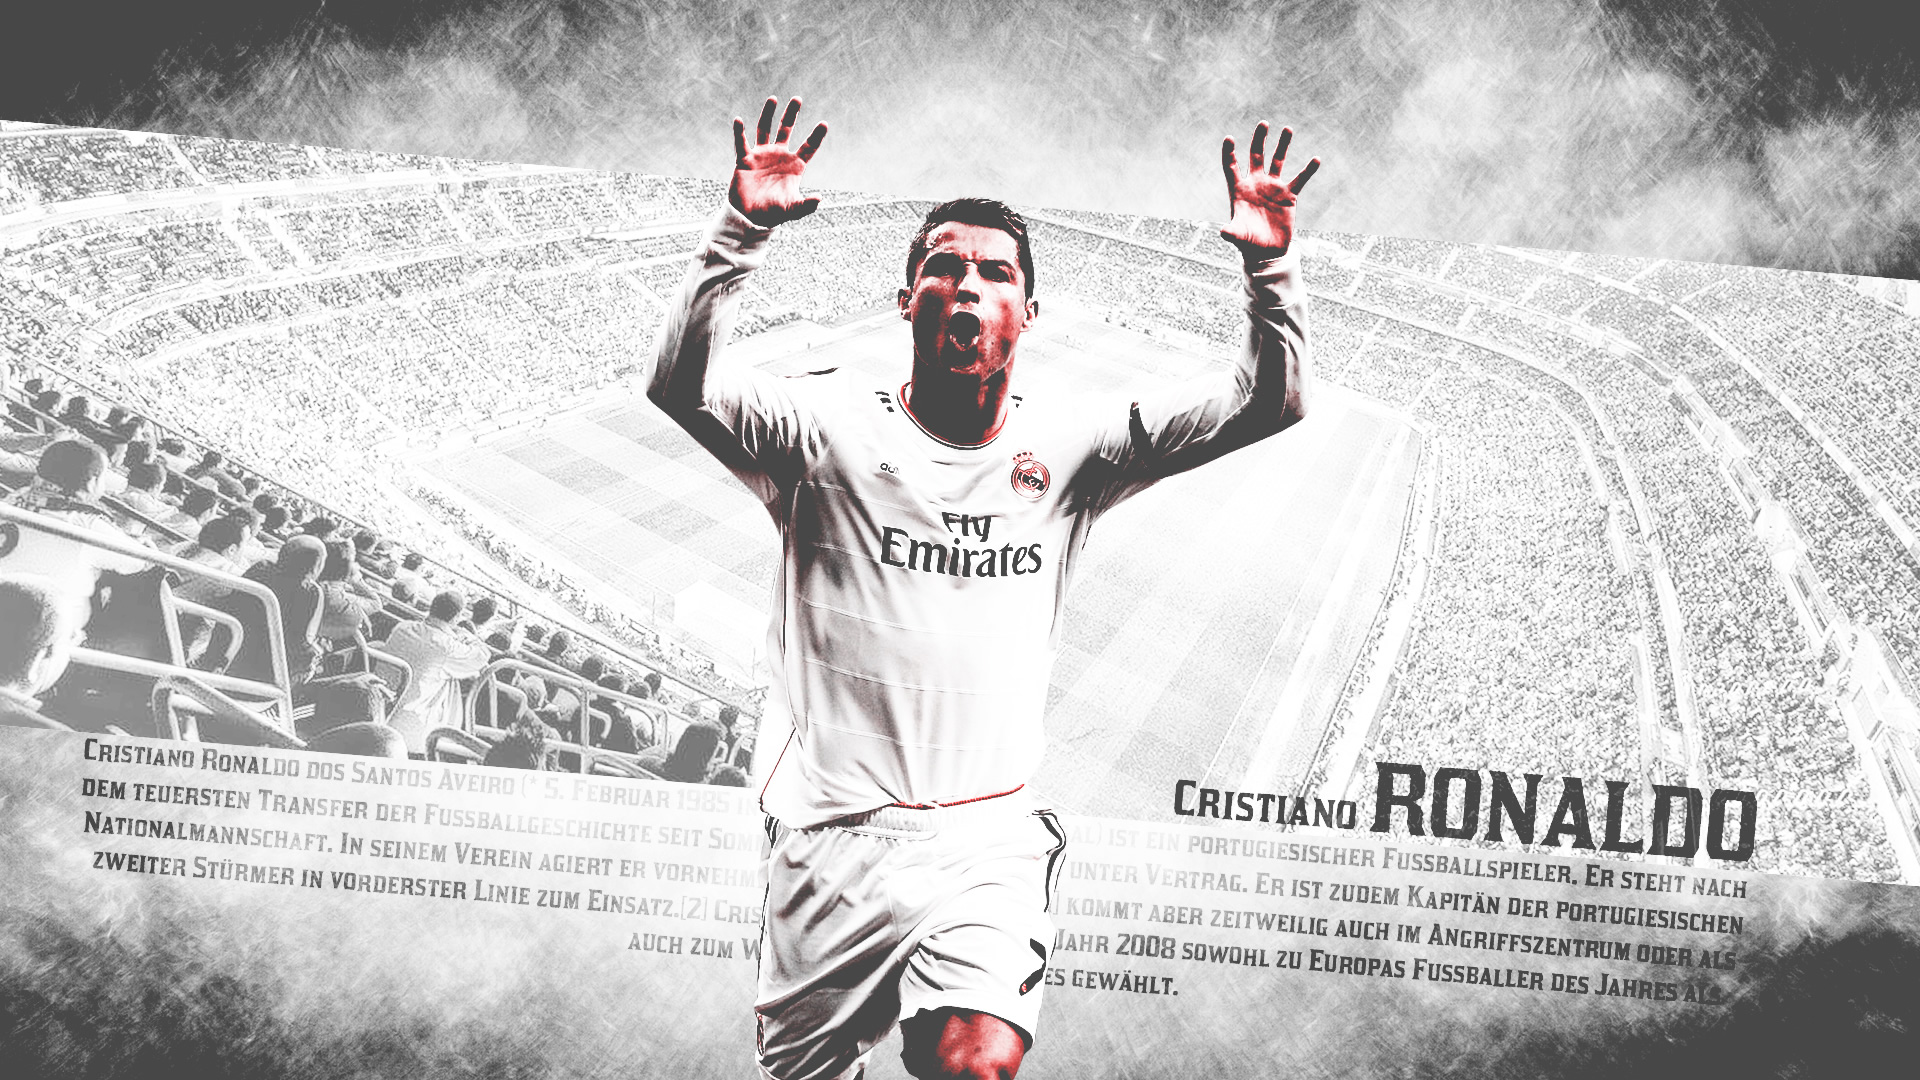 Cristiano Ronaldo running wallpaper (2)